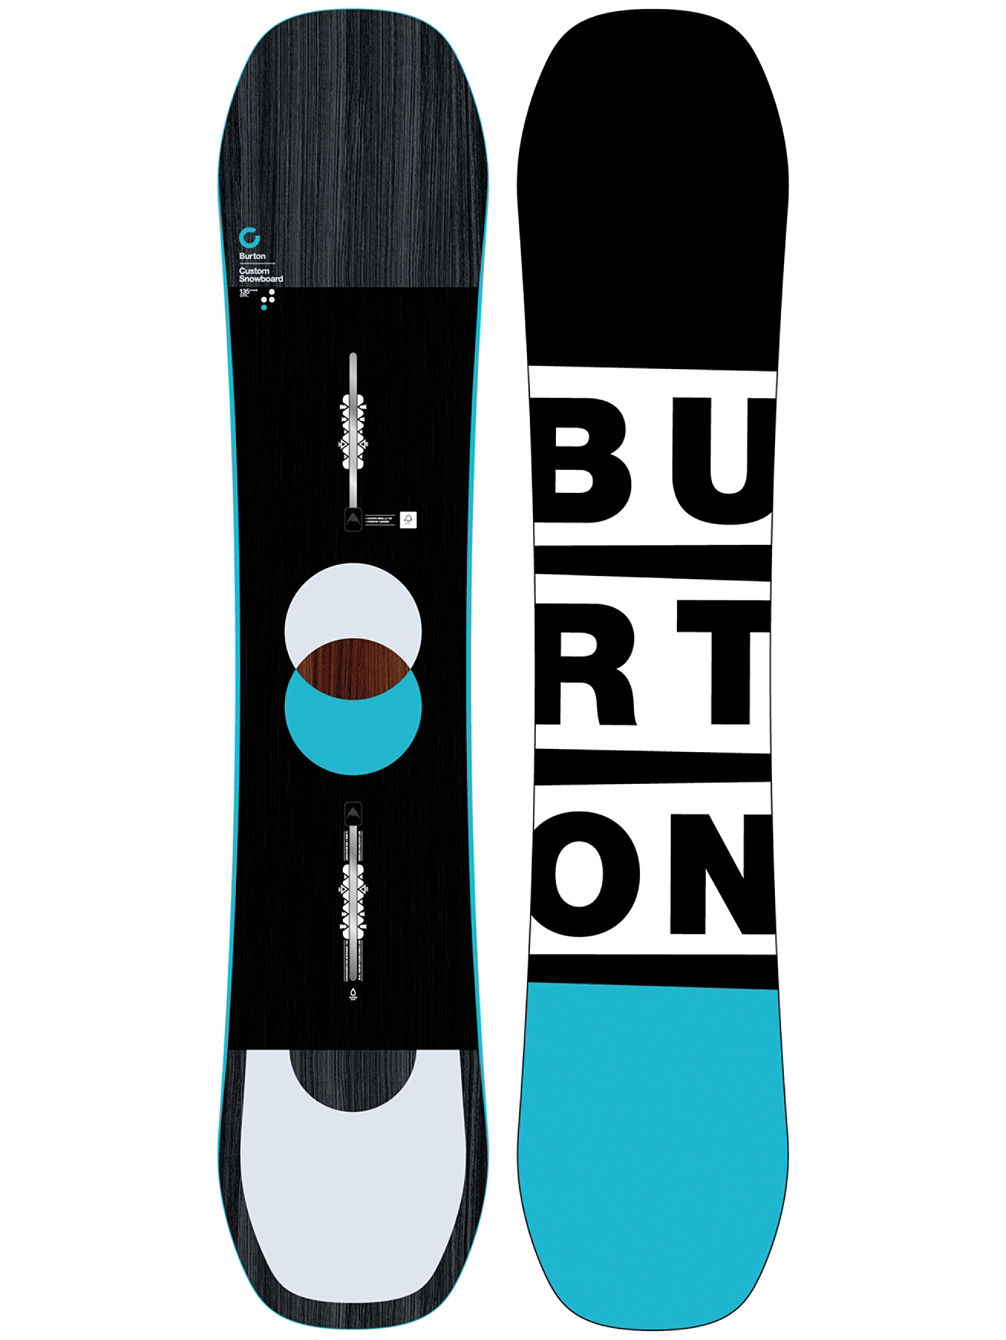 Custom Smalls 145 2020 Snowboard